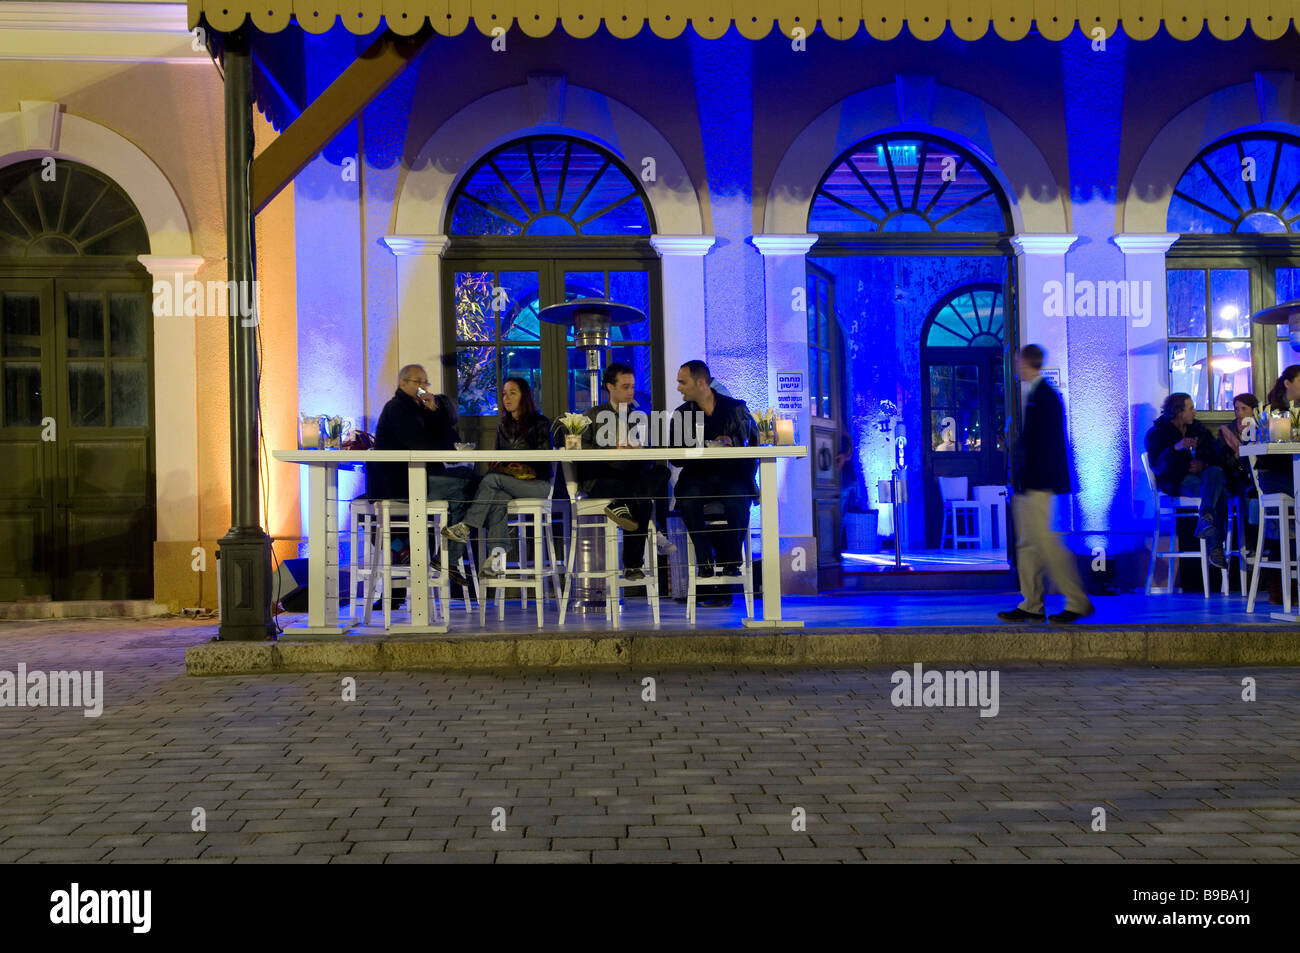 Entertainment complex at the old Tel Aviv - Yafo train station. Israel - Stock Image